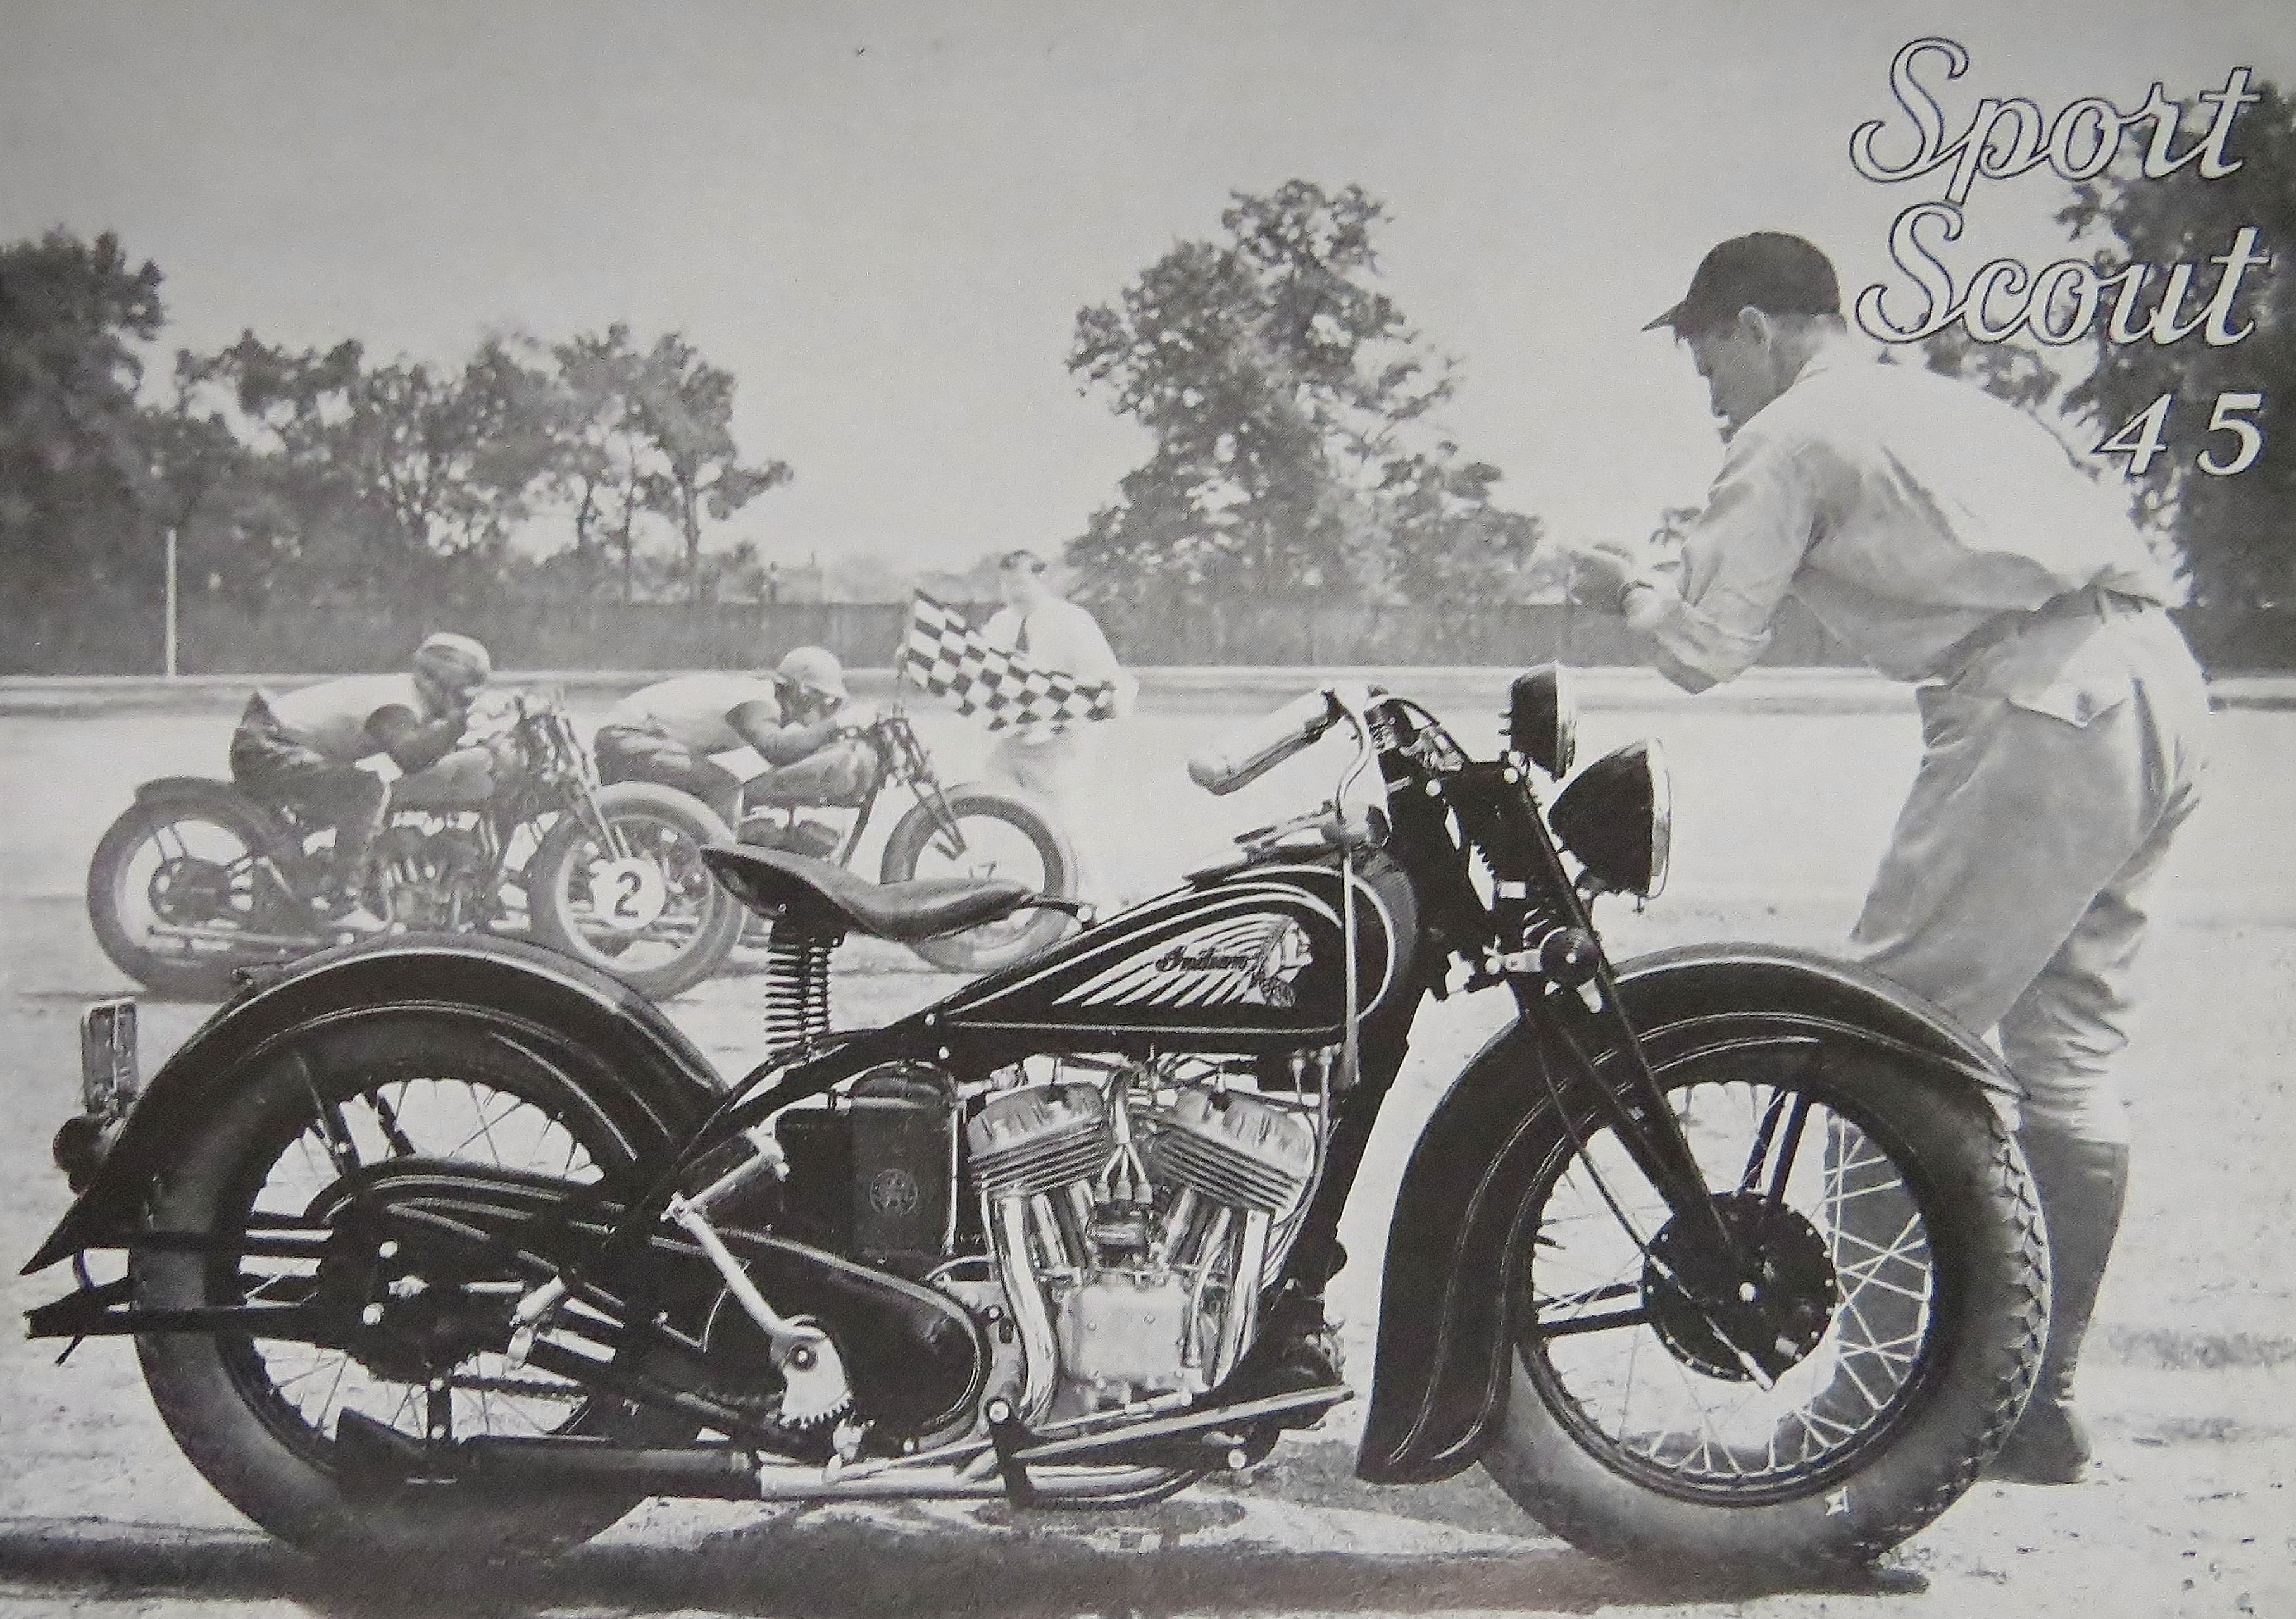 Indian Sport Scout 1938 Indian Motorcycle Motorcycle Illustration Indian Motorbike